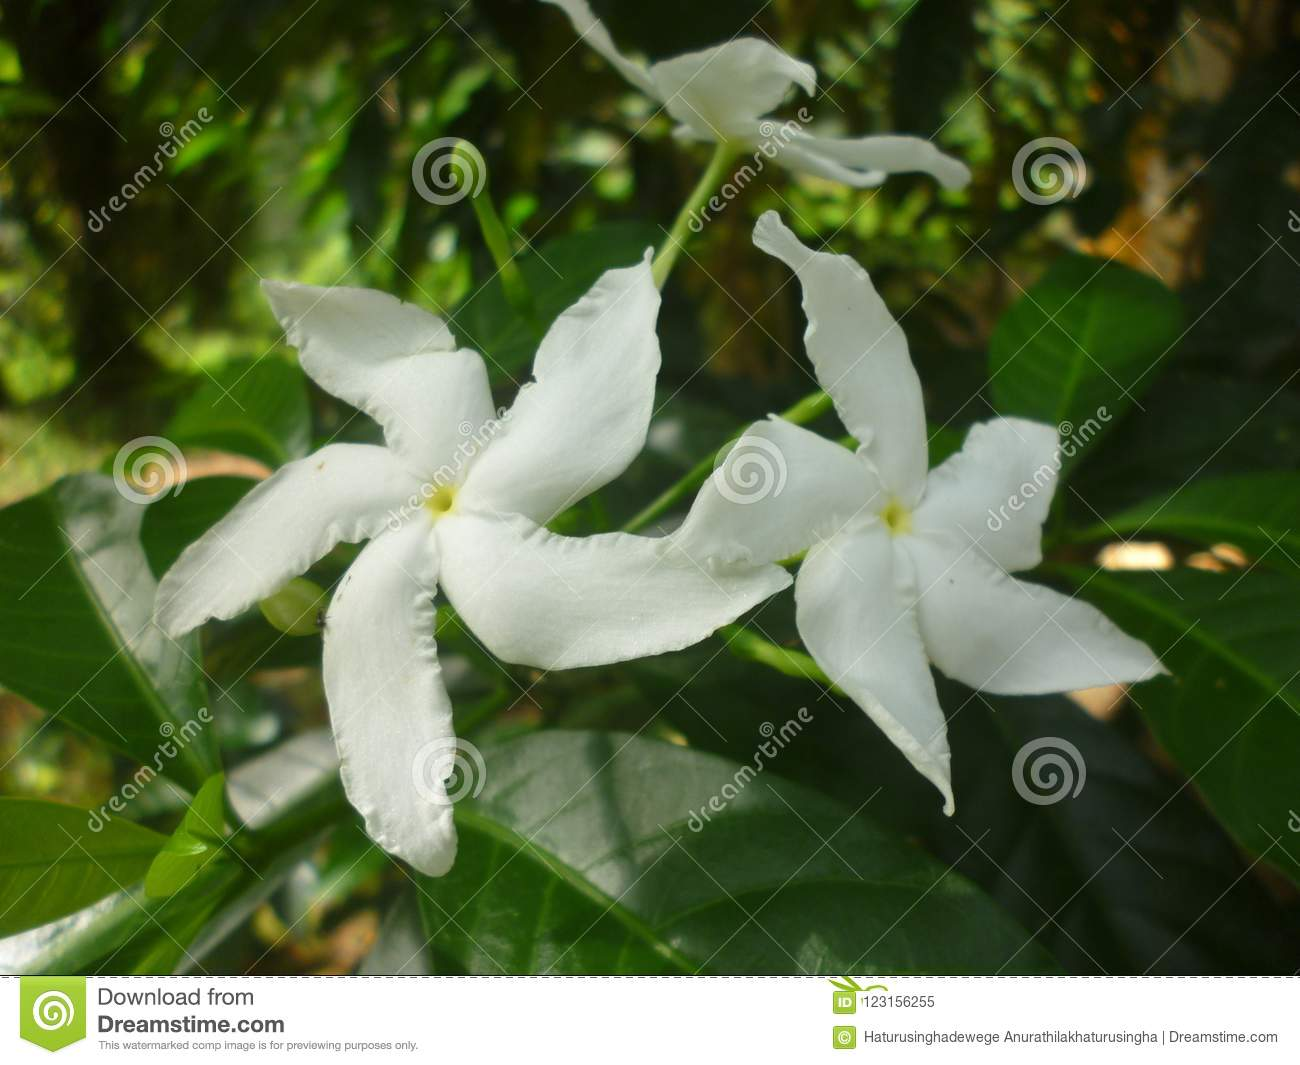 There are wathusudda flower stock image image of flower there are wathusudda flower in garden and jungle the flower is white colourese flowers are beautiful mightylinksfo